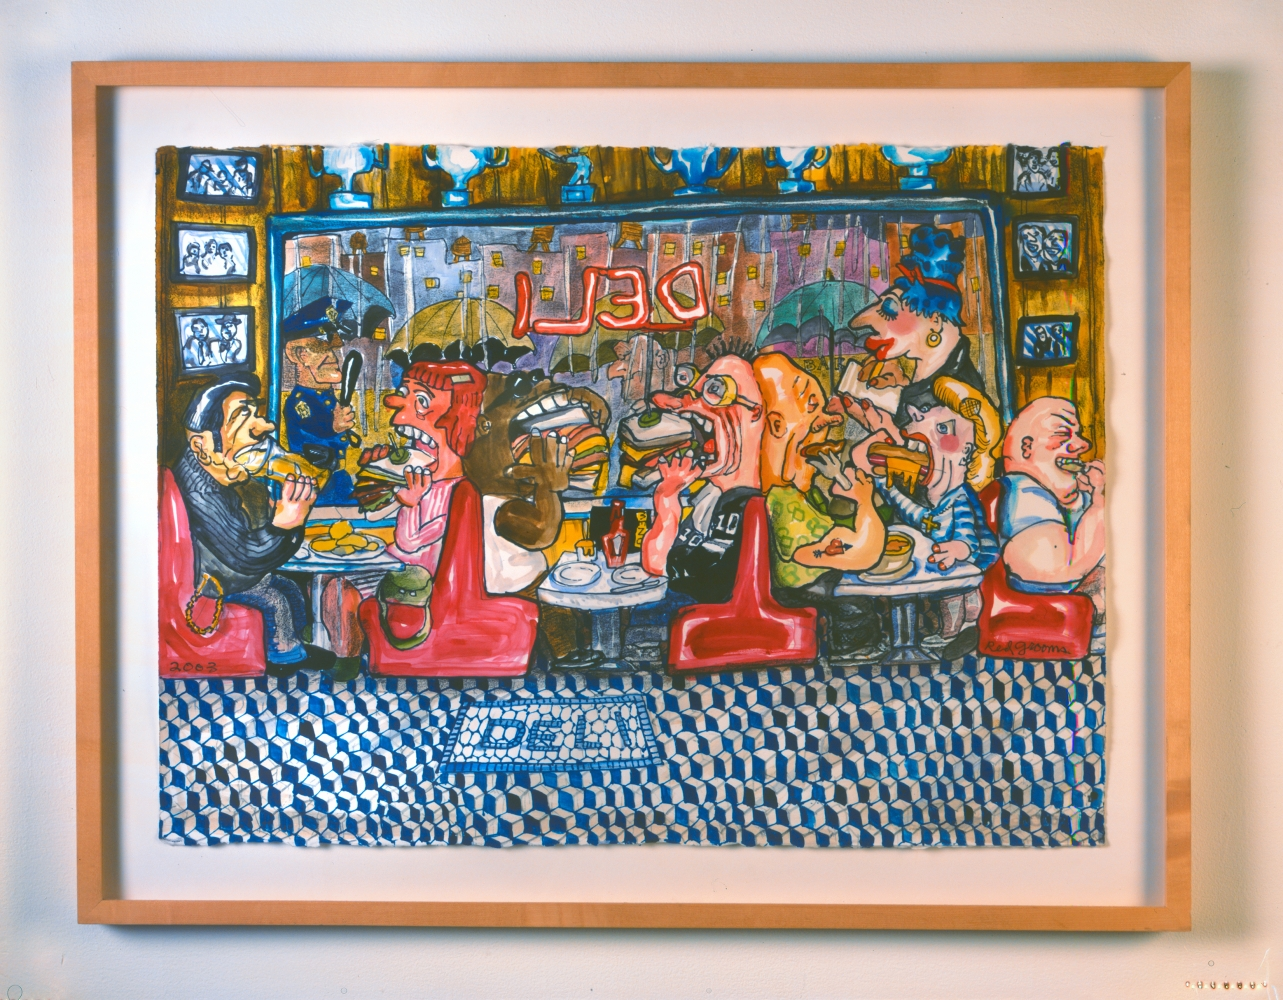 An artwork by Red Grooms depicting exaggerated depictions of customers eating sandwiches at a deli.